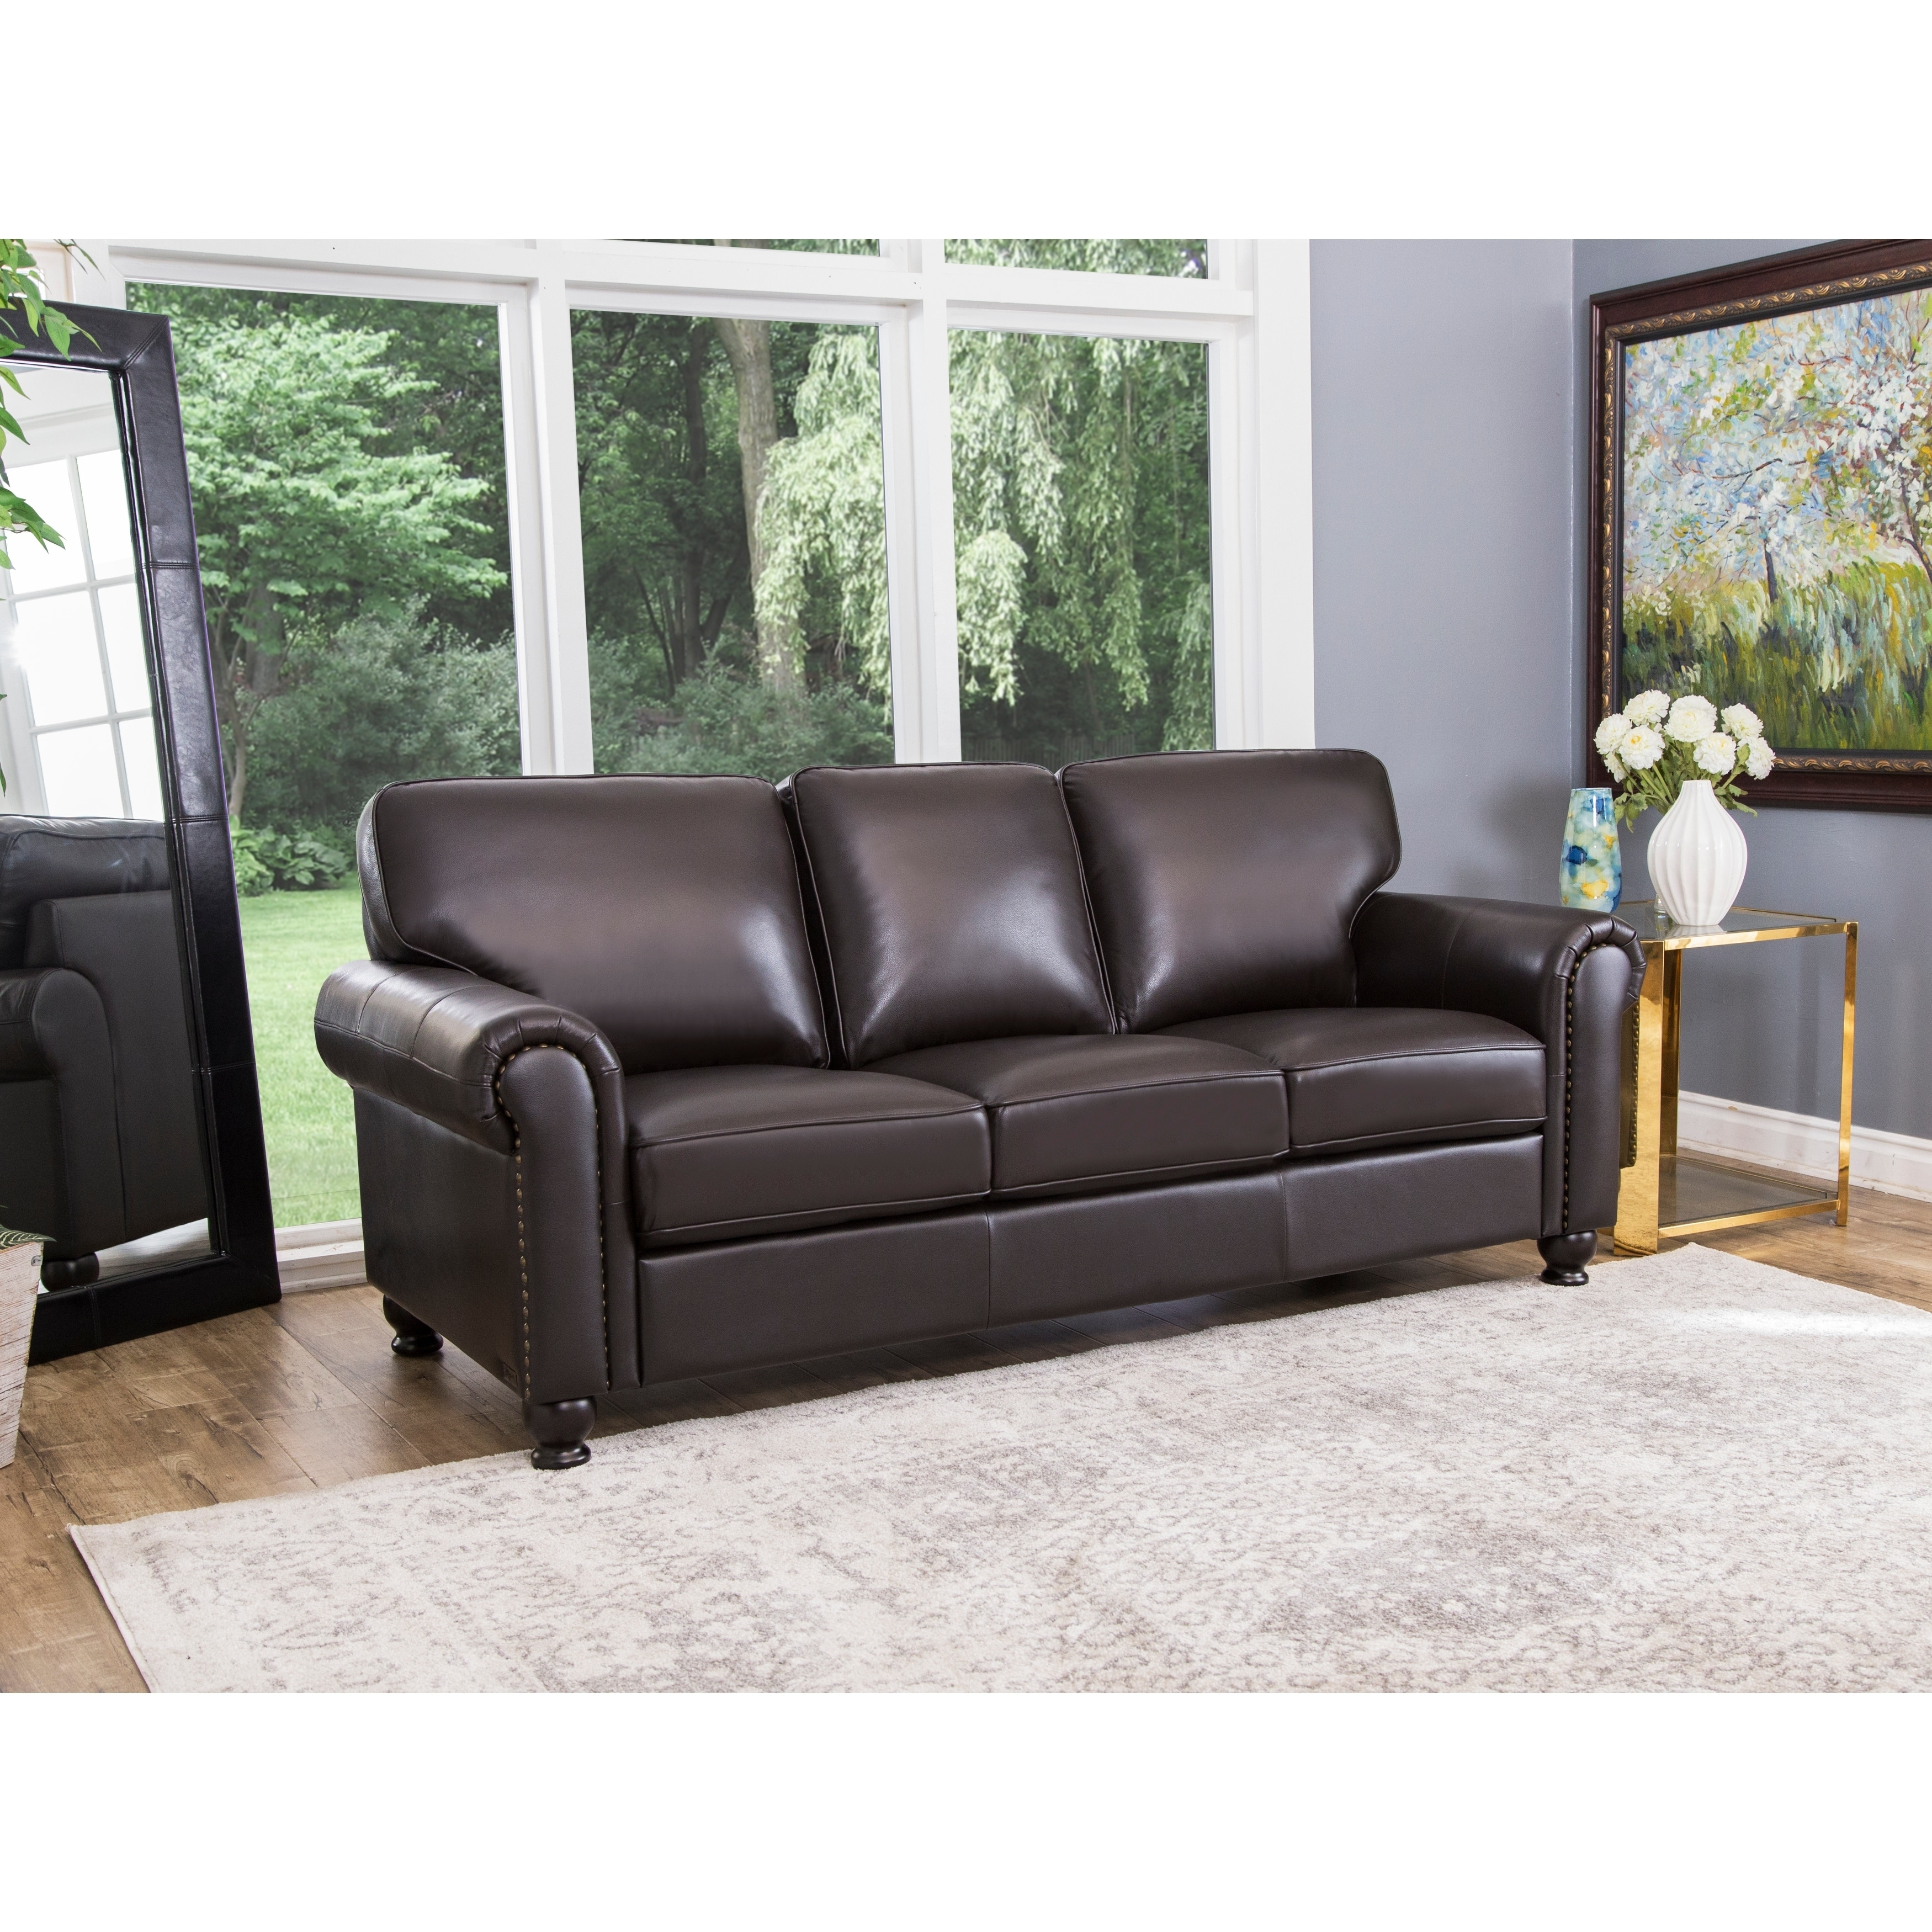 Shop Abbyson London Top Grain Leather Living Room Sofa Set   On Sale   Free  Shipping Today   Overstock.com   7316050